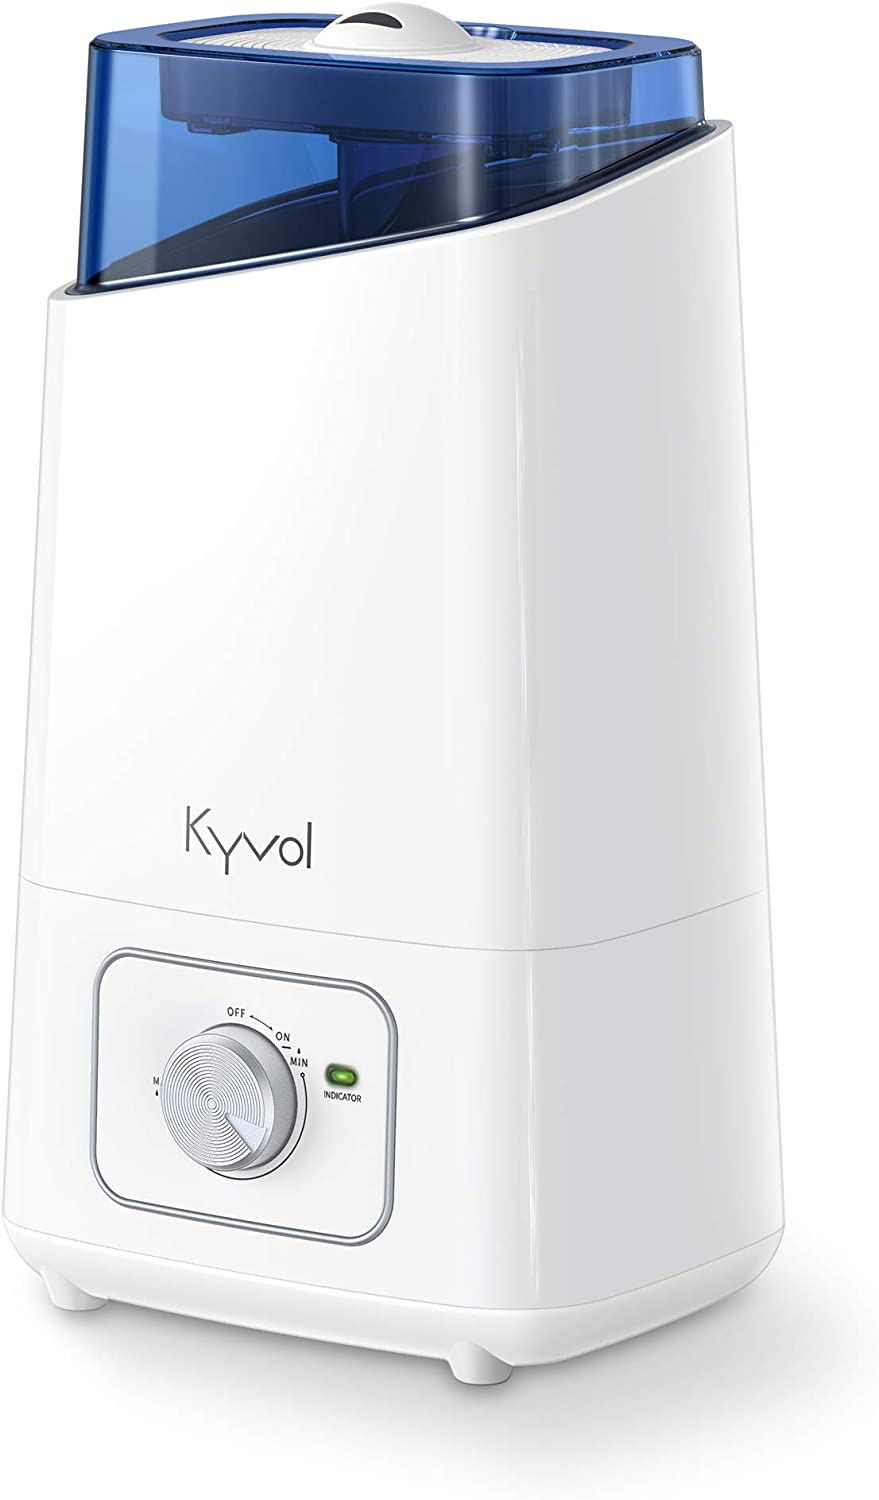 Save Up to 32% off on KYVOL humidifier at Amazon